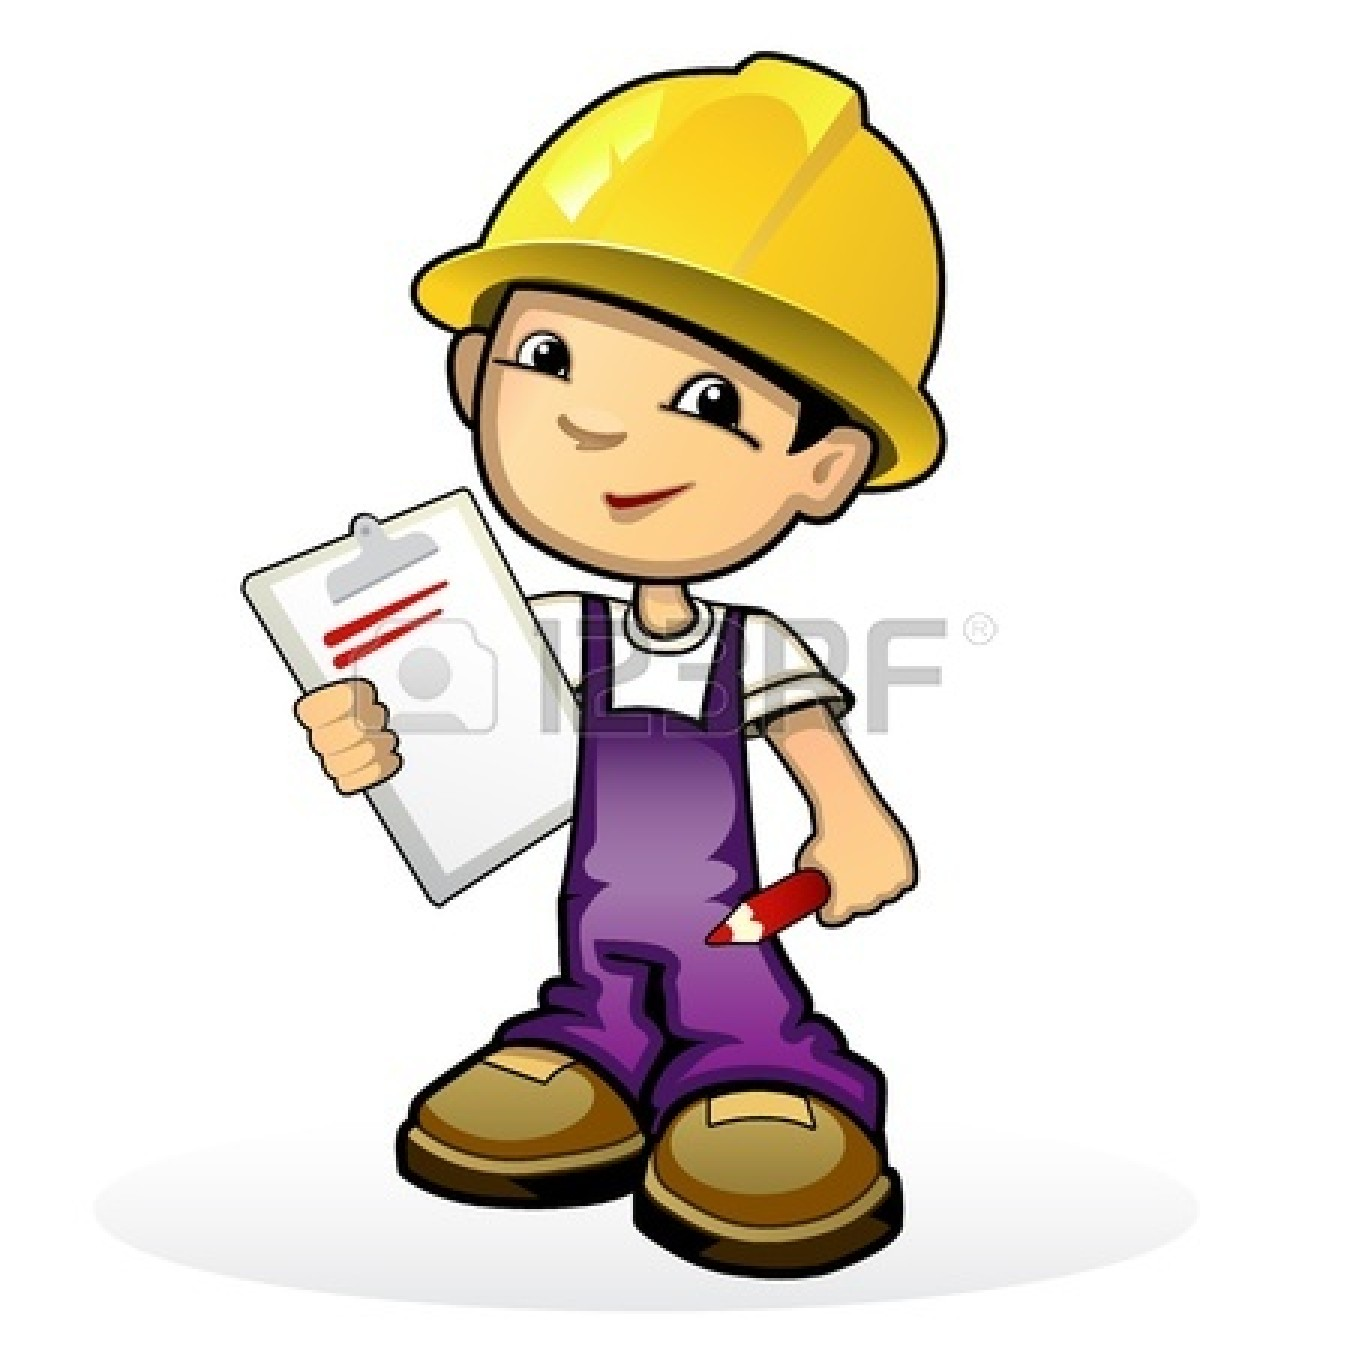 Site engineer clipart picture black and white Engineer Clipart - Clipart Kid picture black and white